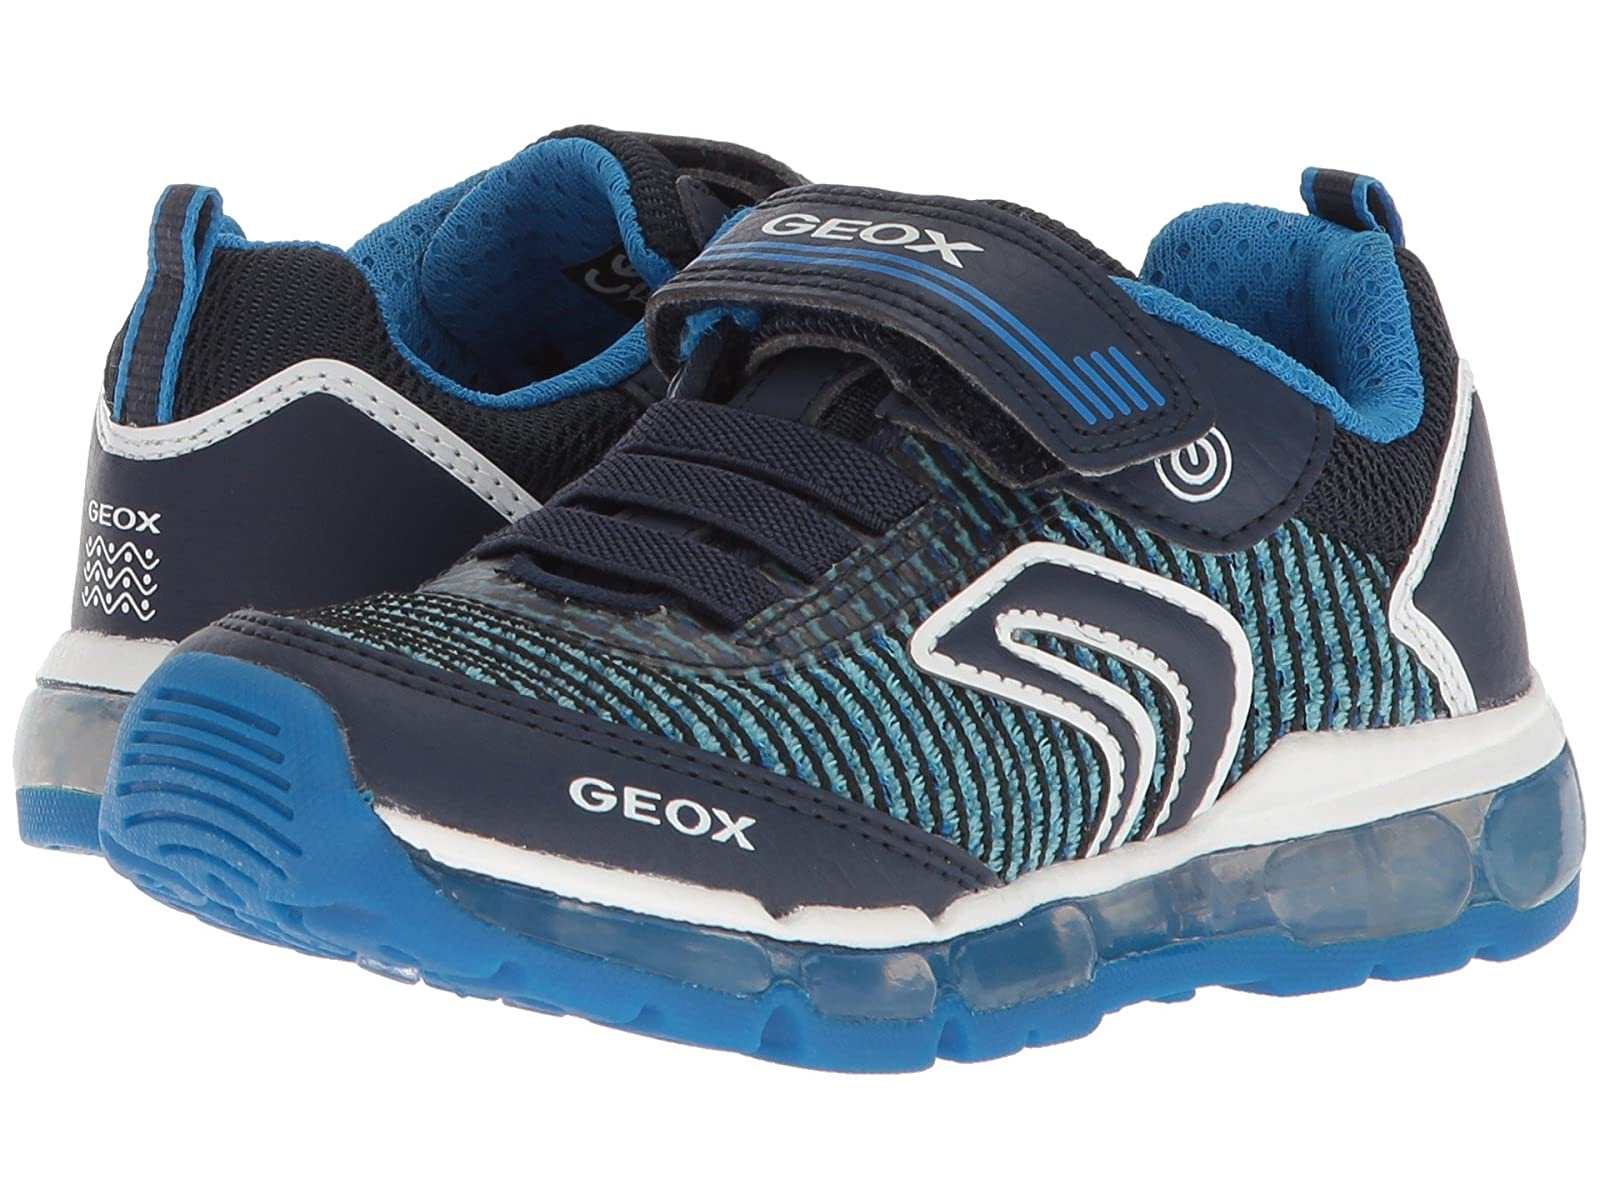 Geox Kids Android 15 (Toddler/Little Kid)Cheap and distinctive eye-catching shoes